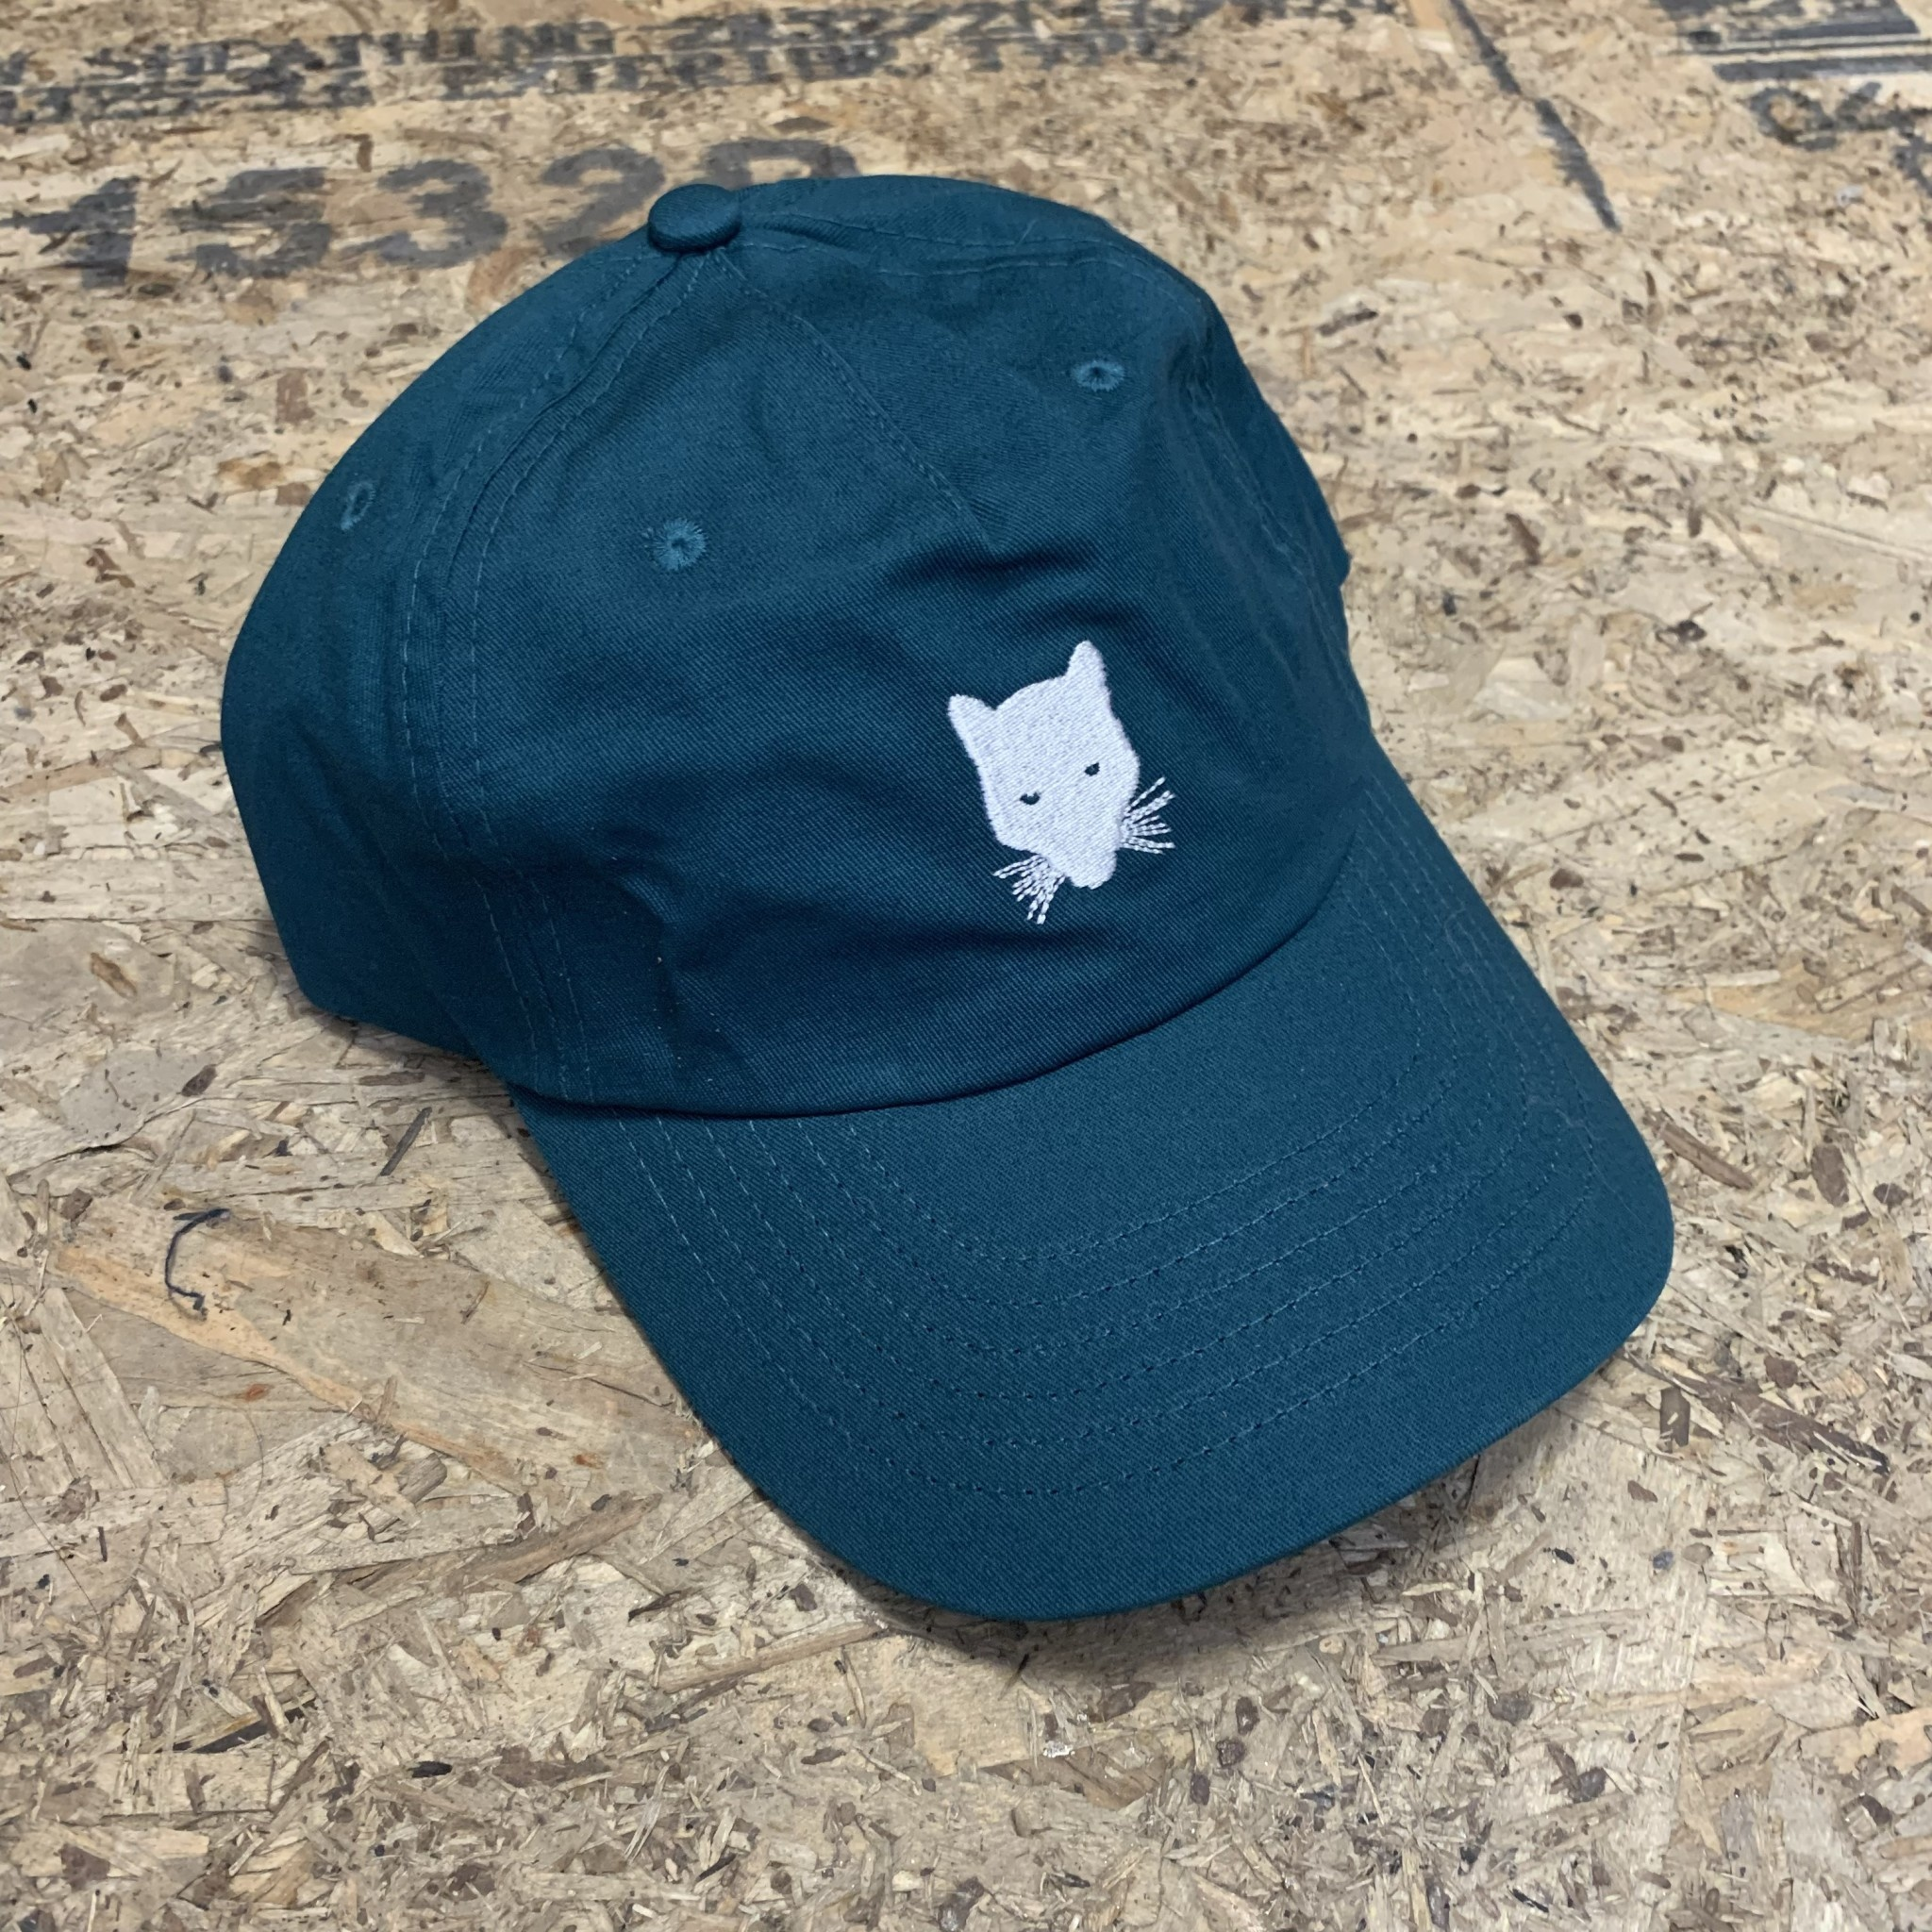 Somewon Collective SomewonCollective - Cougar Dad Cap